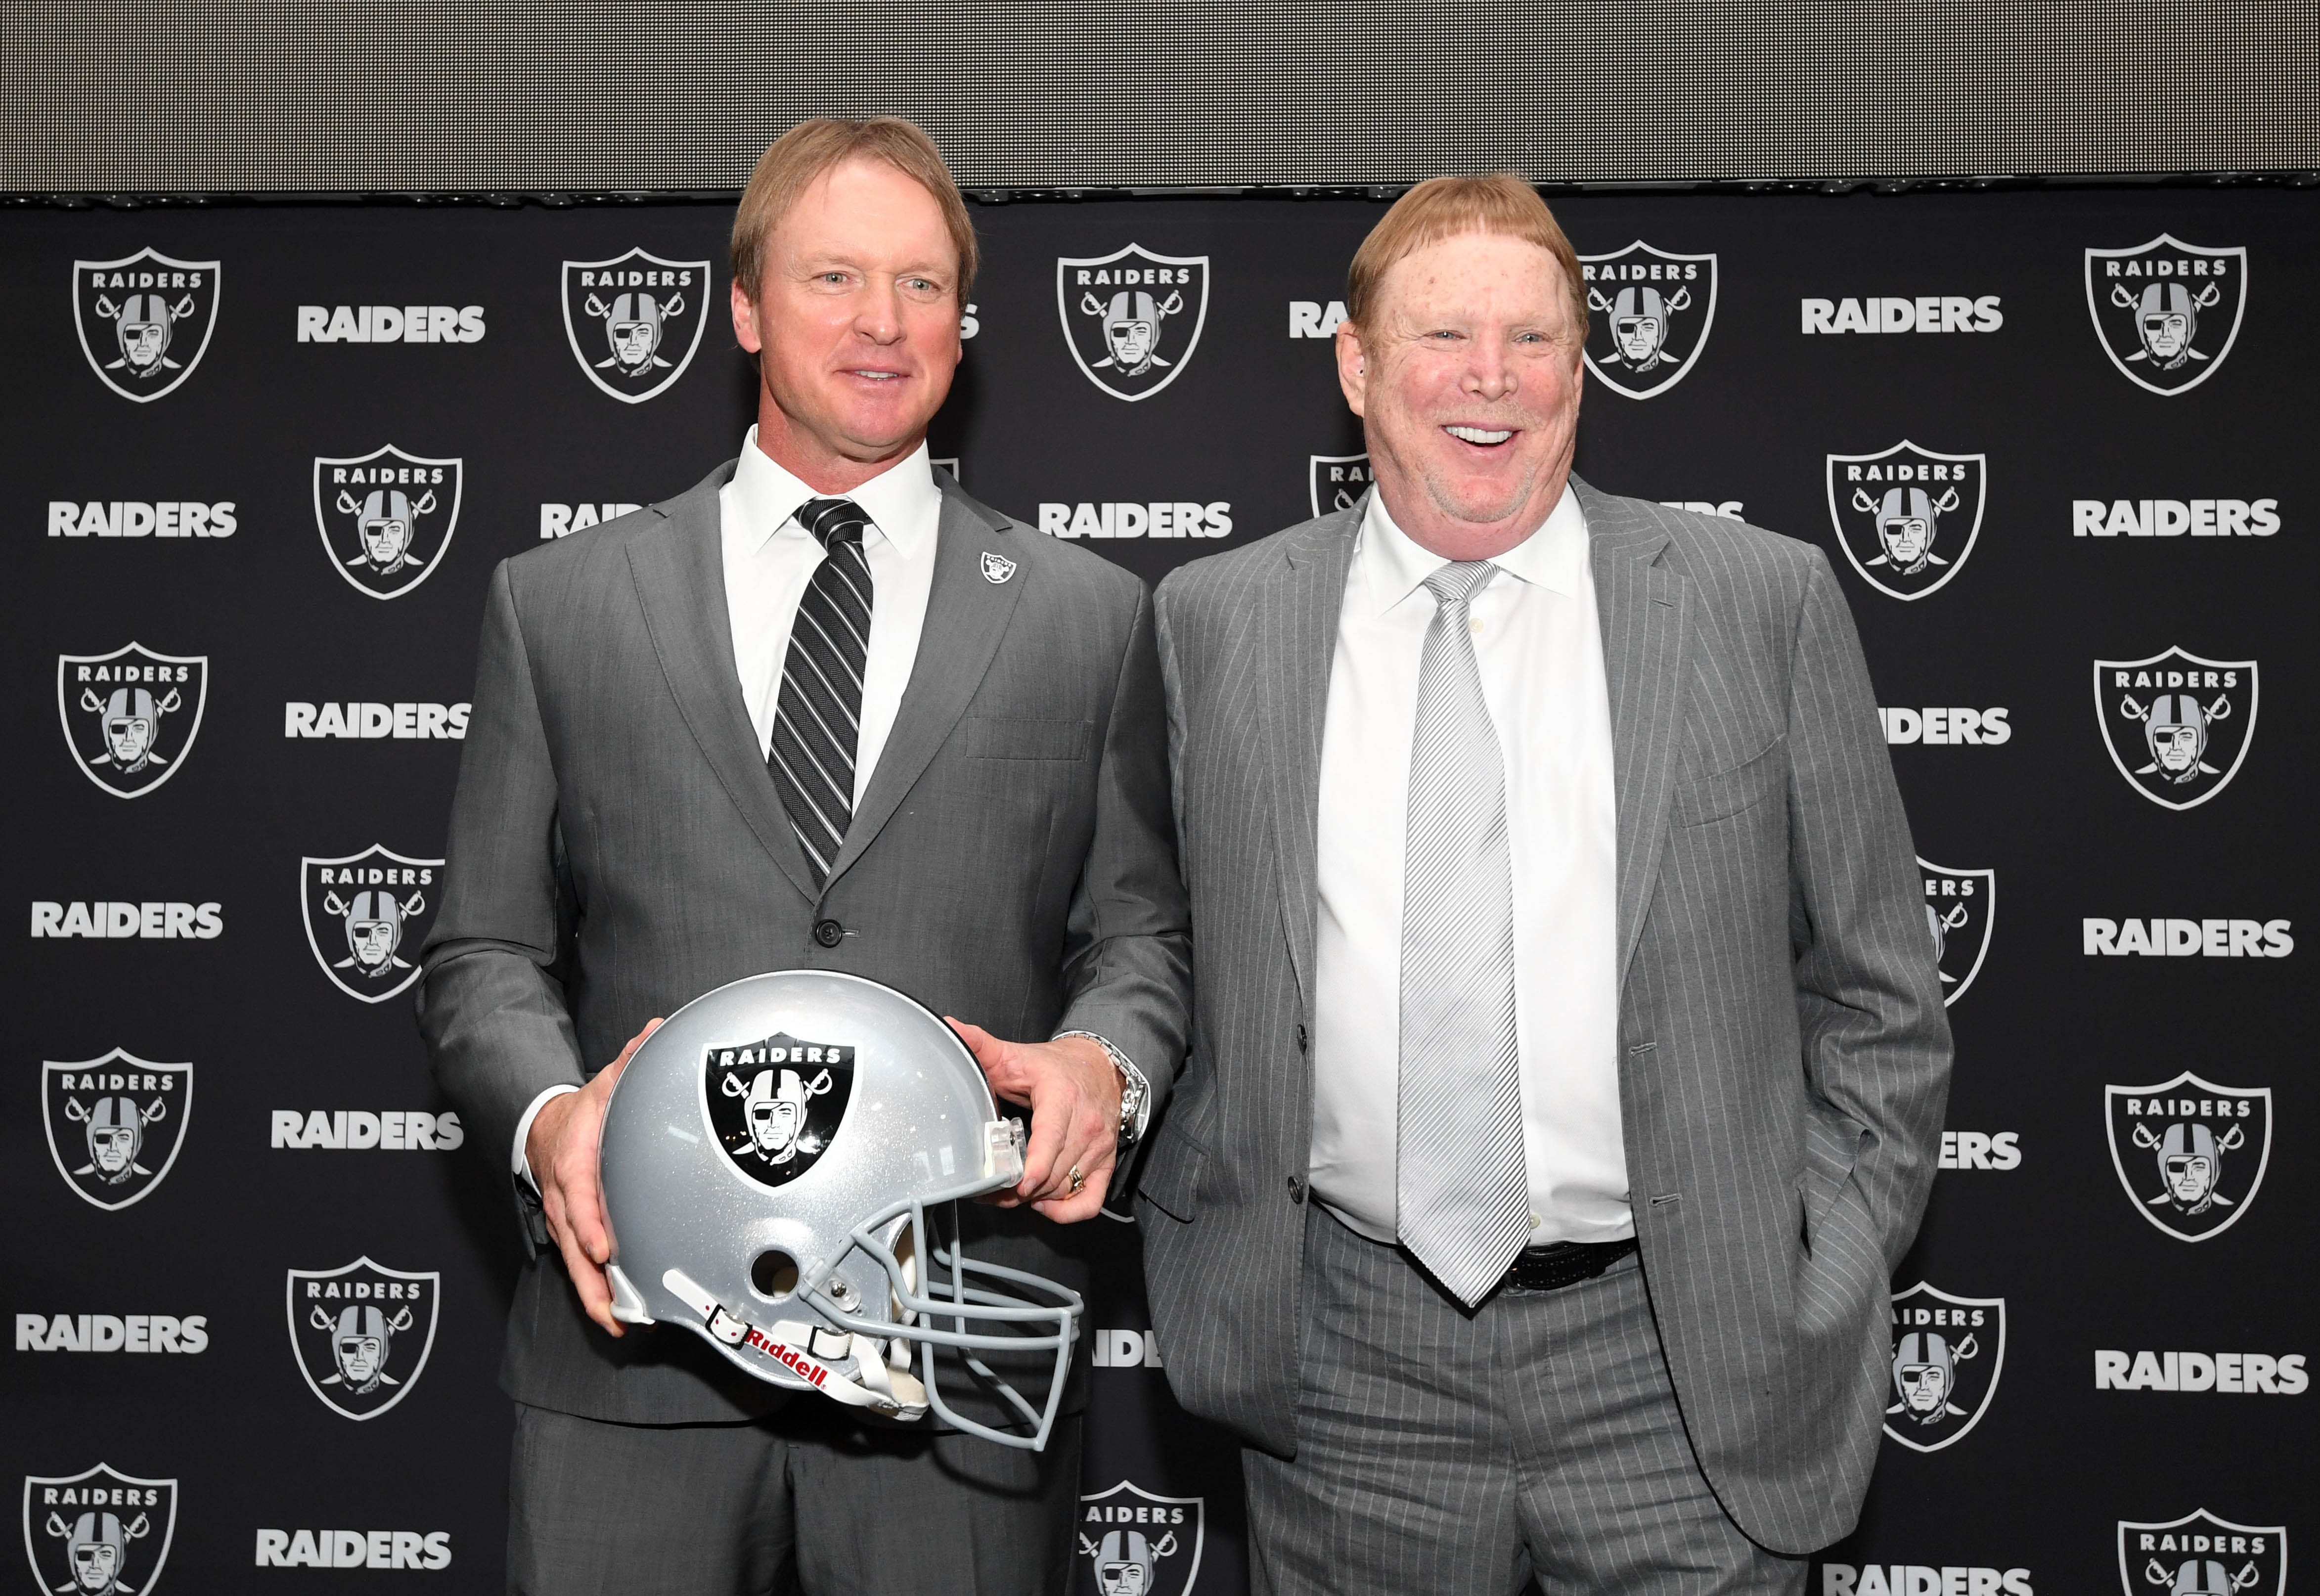 Opinion: Jon Gruden email saga provides important lesson on NFL hiring process